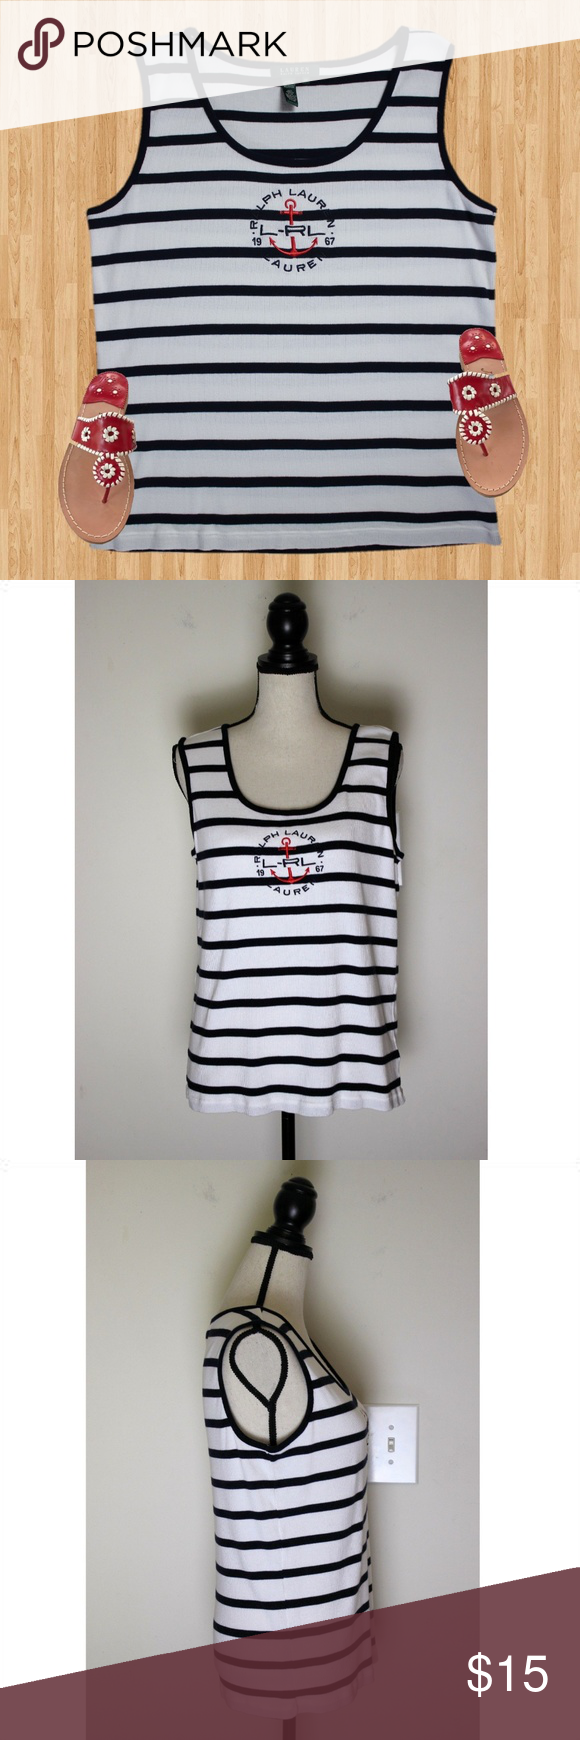 Ralph Lauren Striped Anchor Logo Tank Top Size 2X This top is perfect for summer…